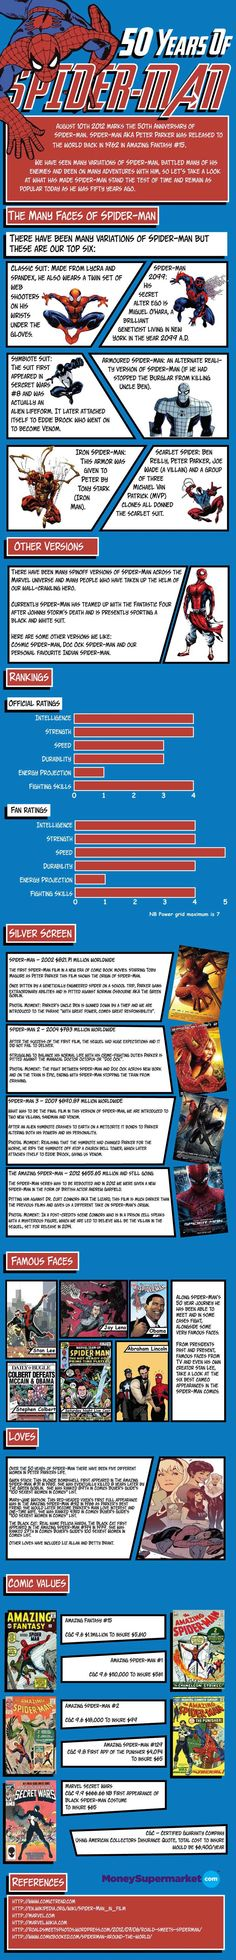 50 years of Spider-Man #infographic